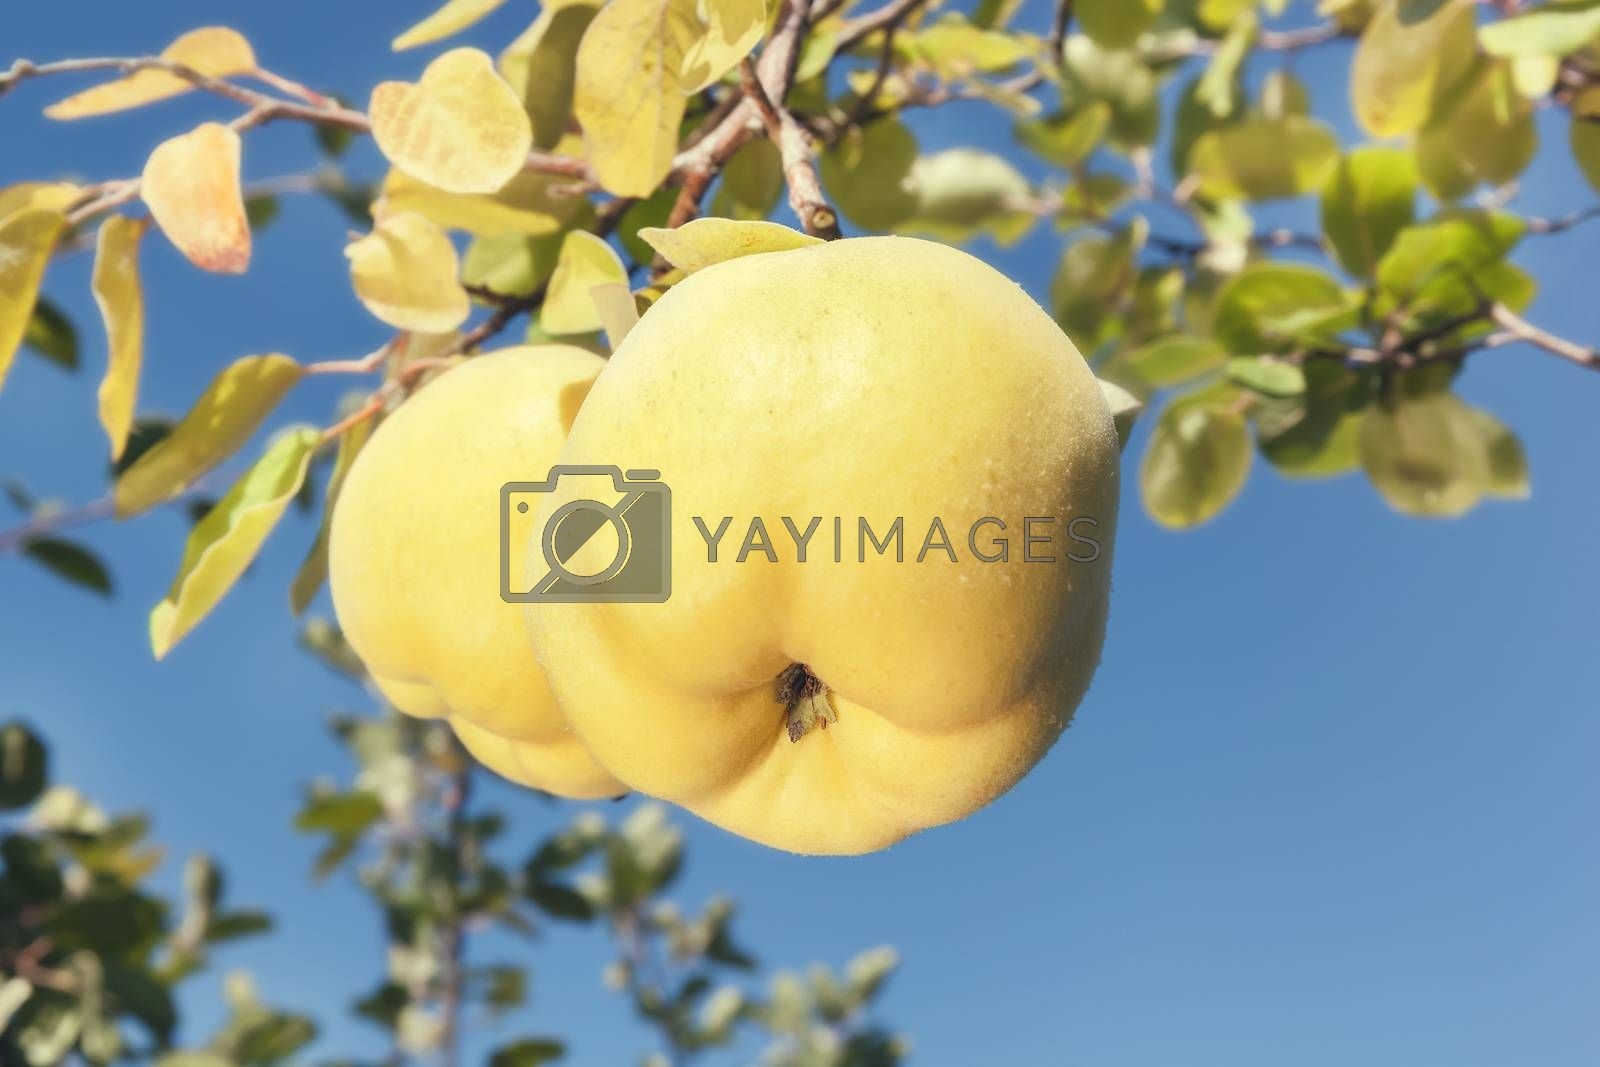 Ripe Quinces hanging from a tree, close up by Slast20